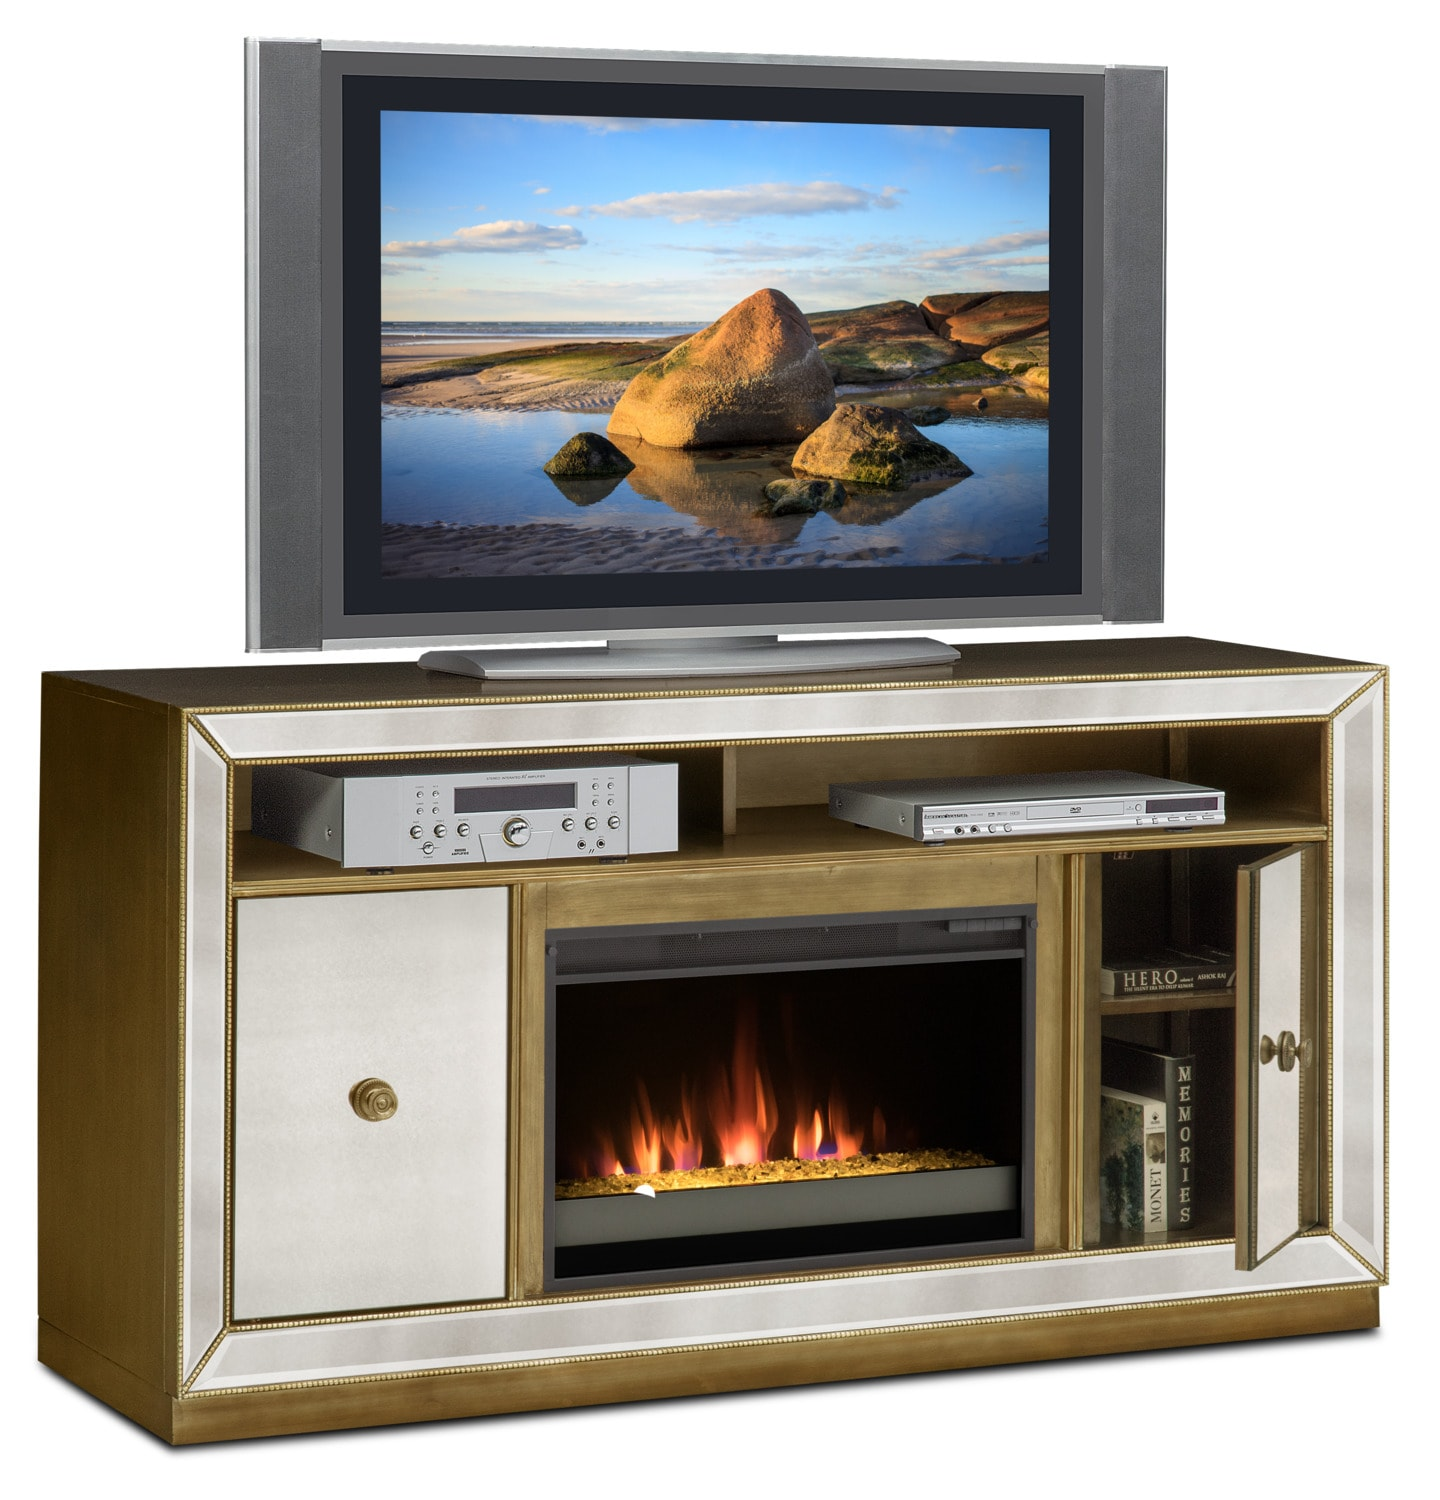 Reflection Contemporary Fireplace TV Stand - Mirror - Fireplaces American Signature Furniture